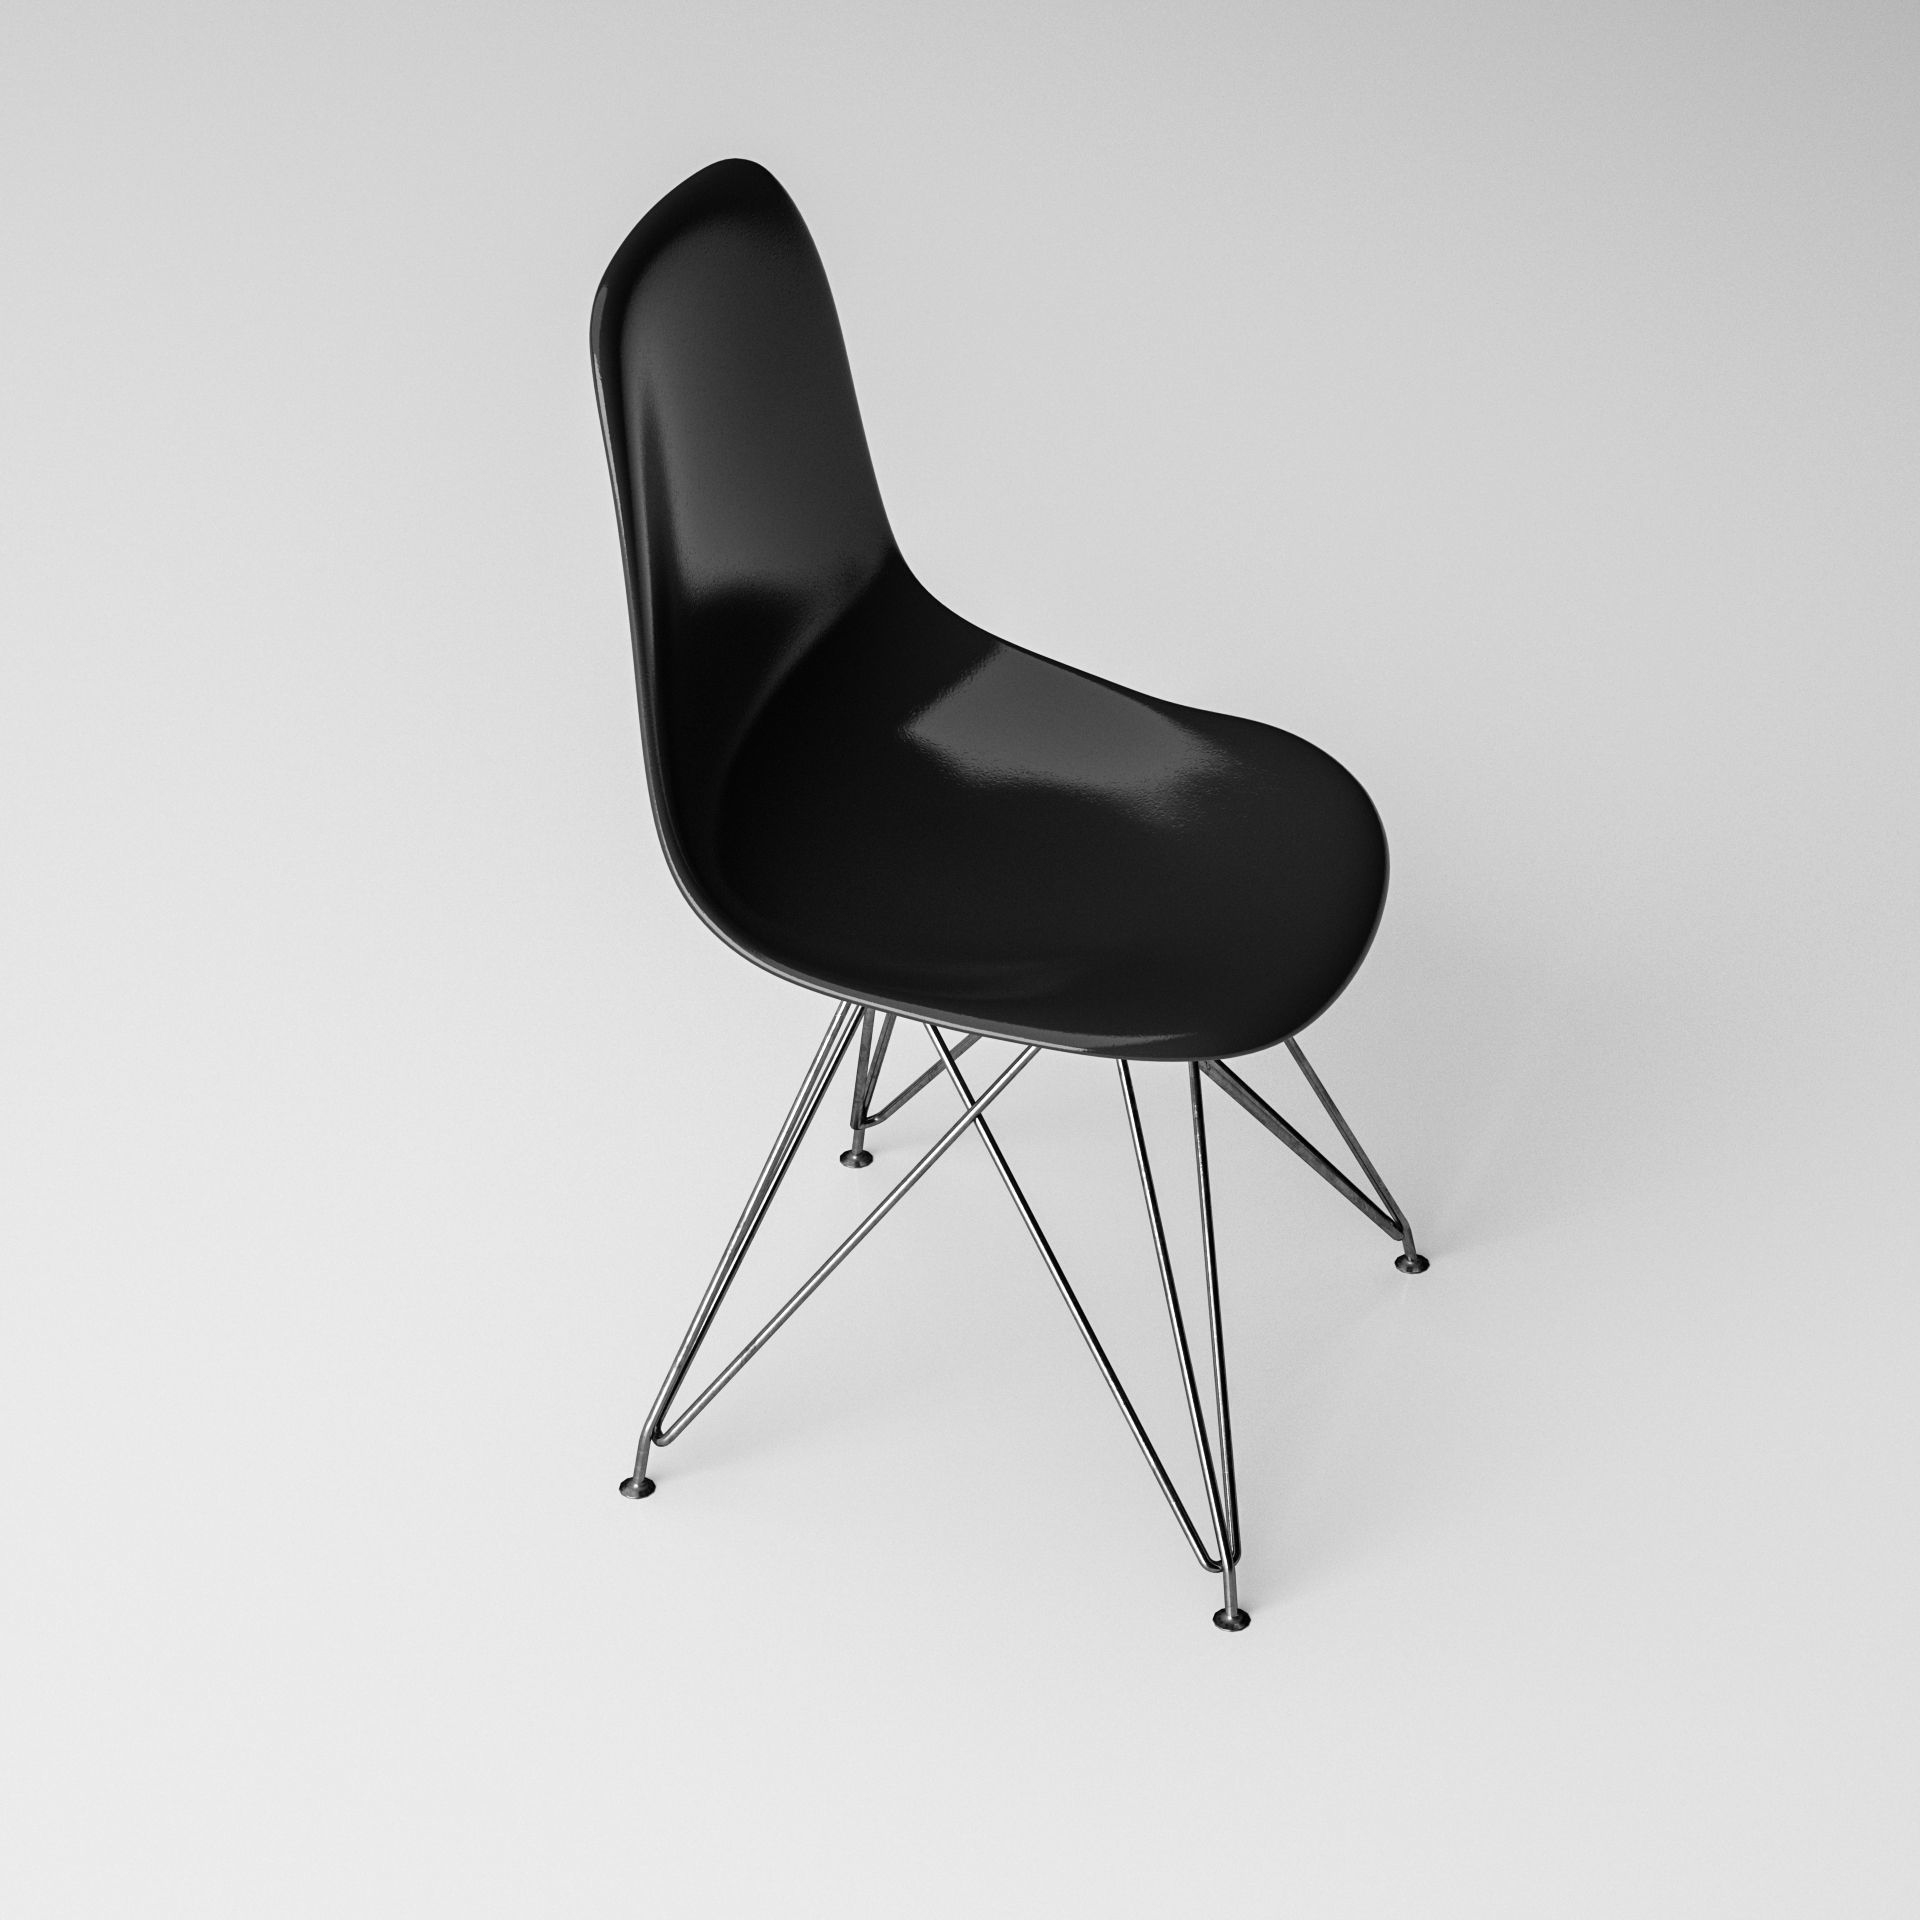 Dining Chair - High Quality Furniture 03